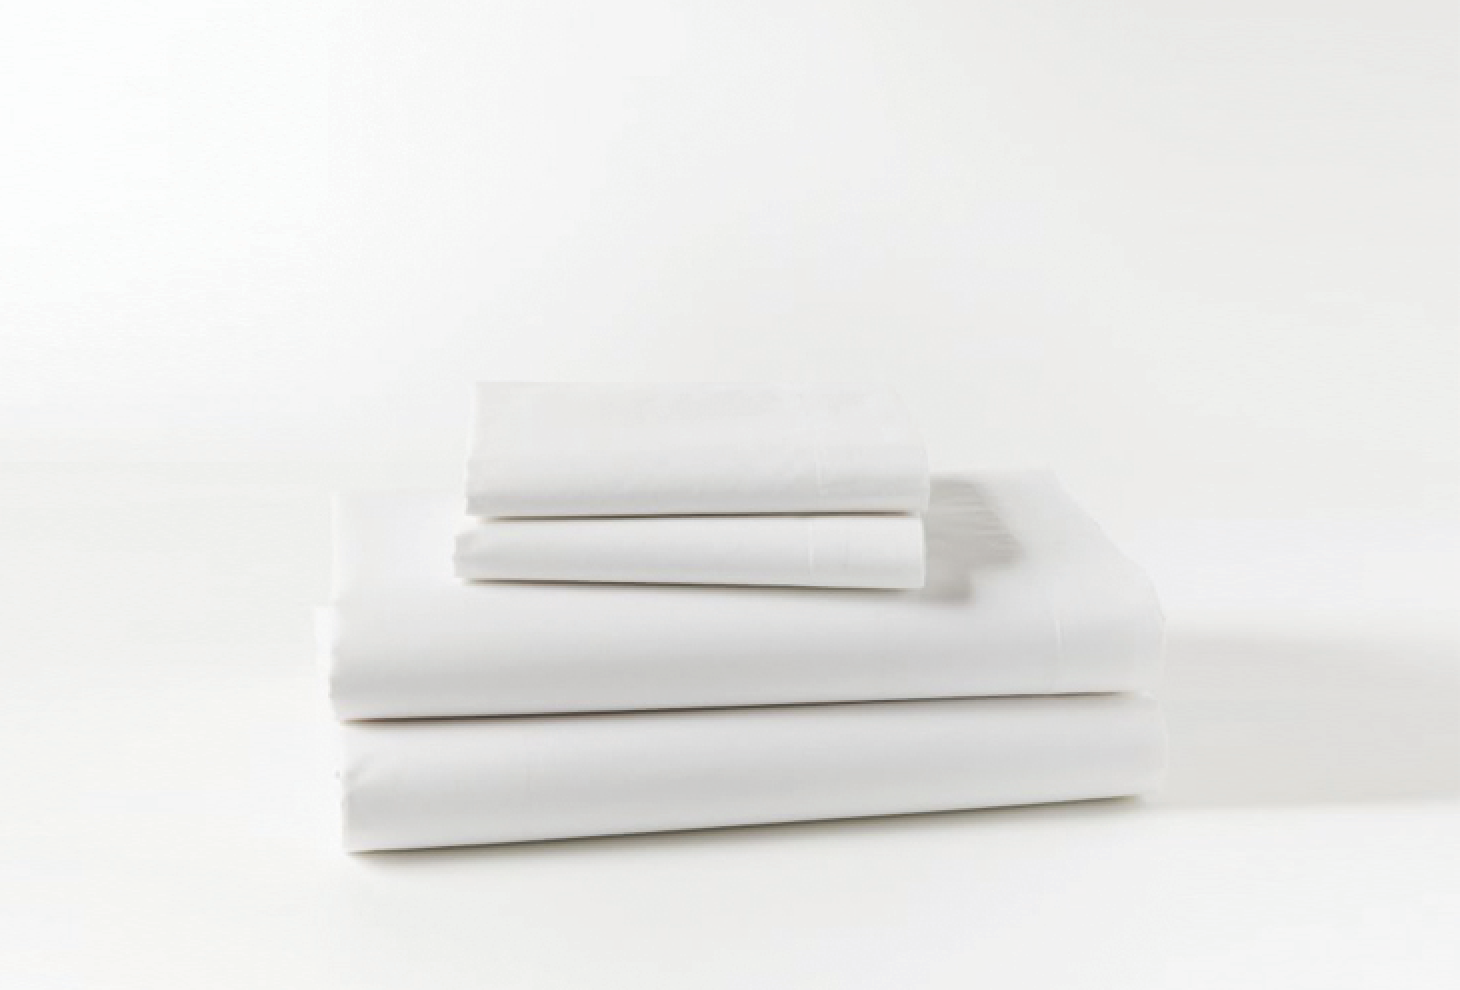 Simple 400-Thread-Count Organic Cotton Sheets from West Elm are $loading=